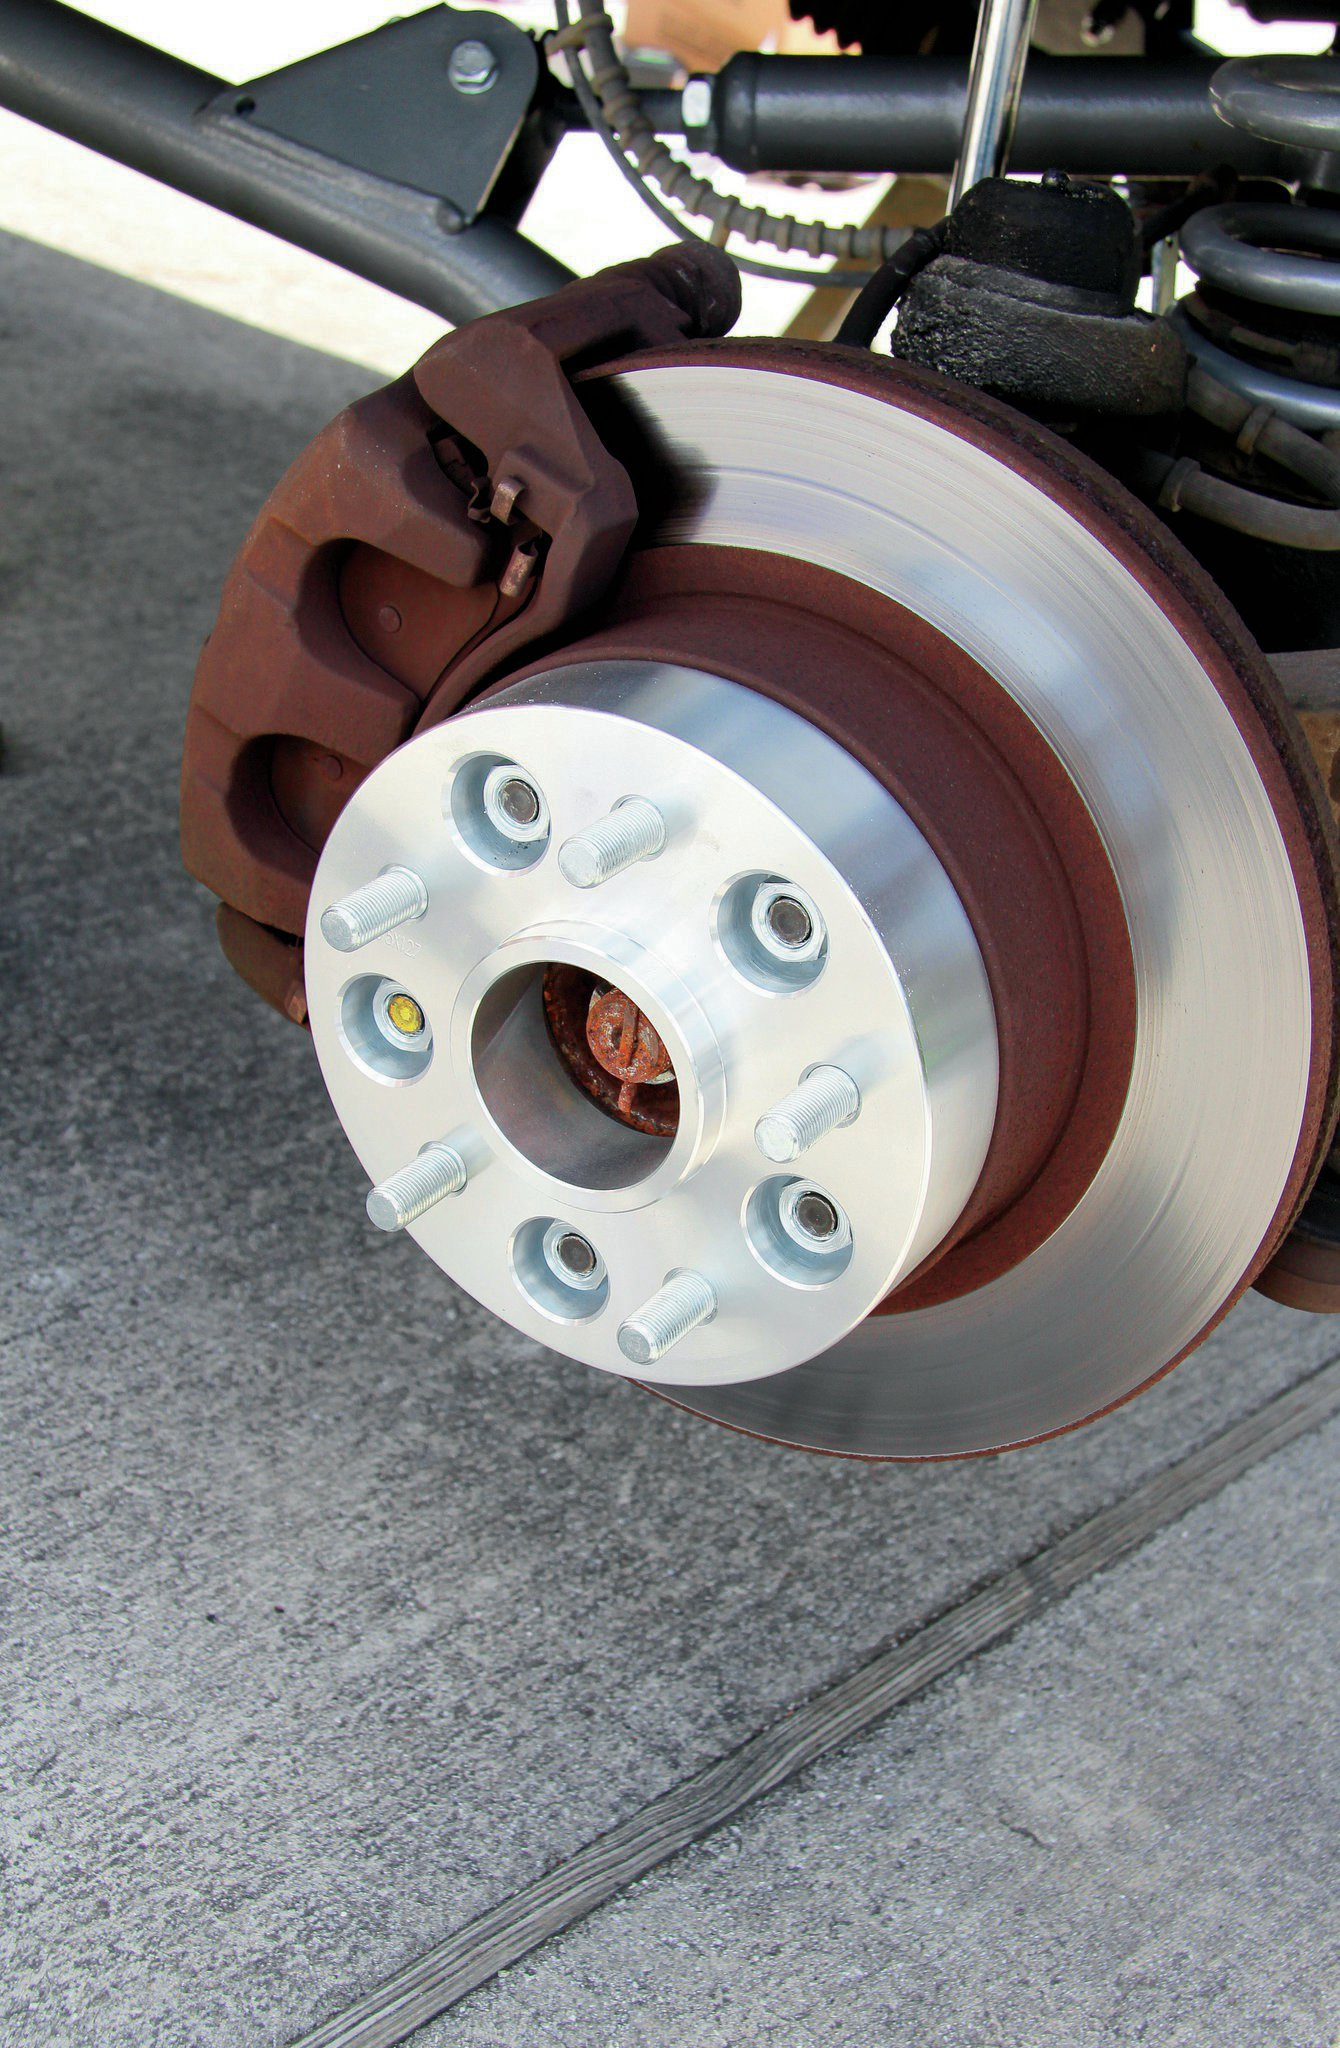 Since the long-arm suspension set us back more than we originally budgeted for, something had to go. In our case, it was aftermarket wheels. To allow us to re-use our factory 16-inch WJ wheels; we added at set of 1.5-inch wheel spacers to our Rough Country order. After dousing the studs in Loctite, we torqued the hub-centric spacers down.